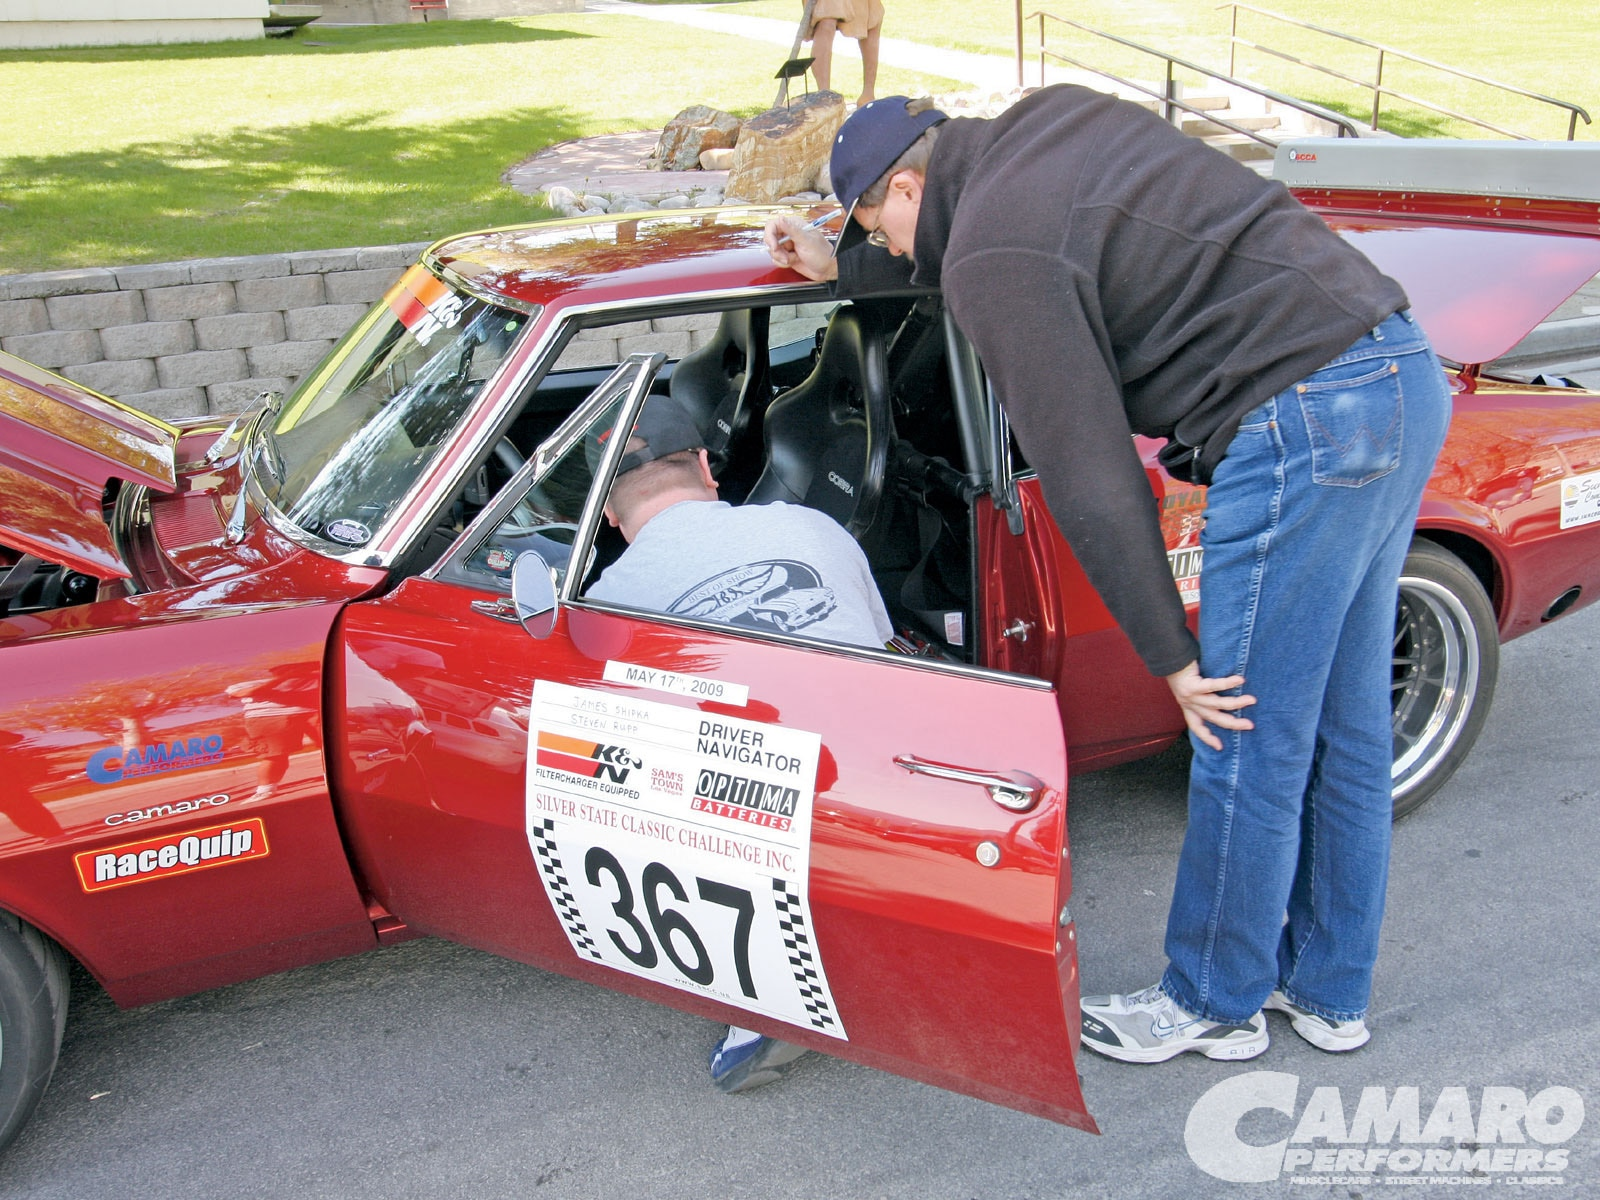 Camp_0909_05 1967_camaro_road_racing Inspection